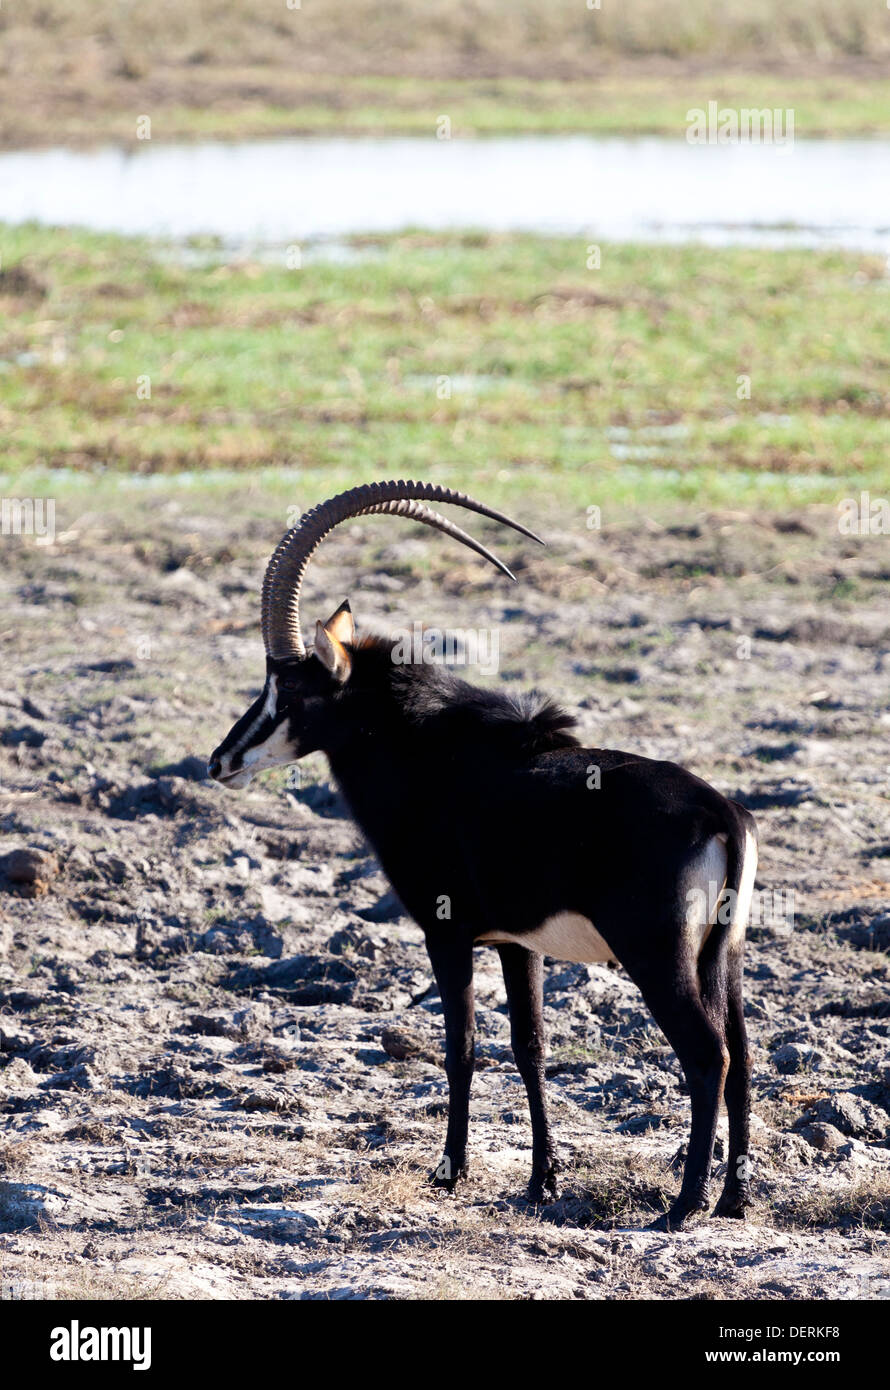 A sable antelope at the edge of a watering hole in Chobe national park, Botswana Stock Photo